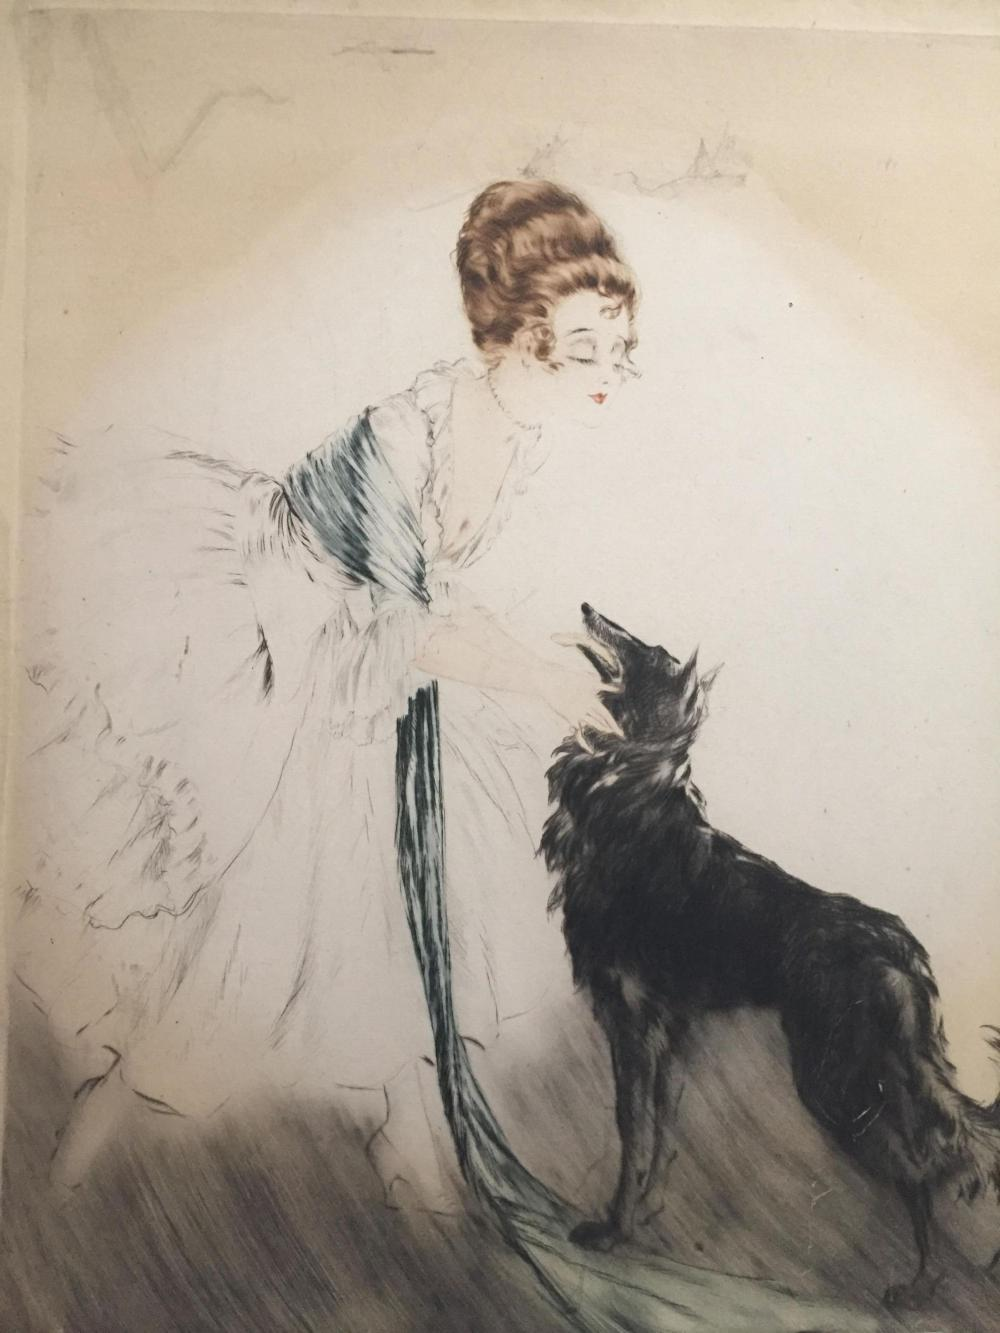 In Style Of Icart- Hand Colored Print Of A Woman.